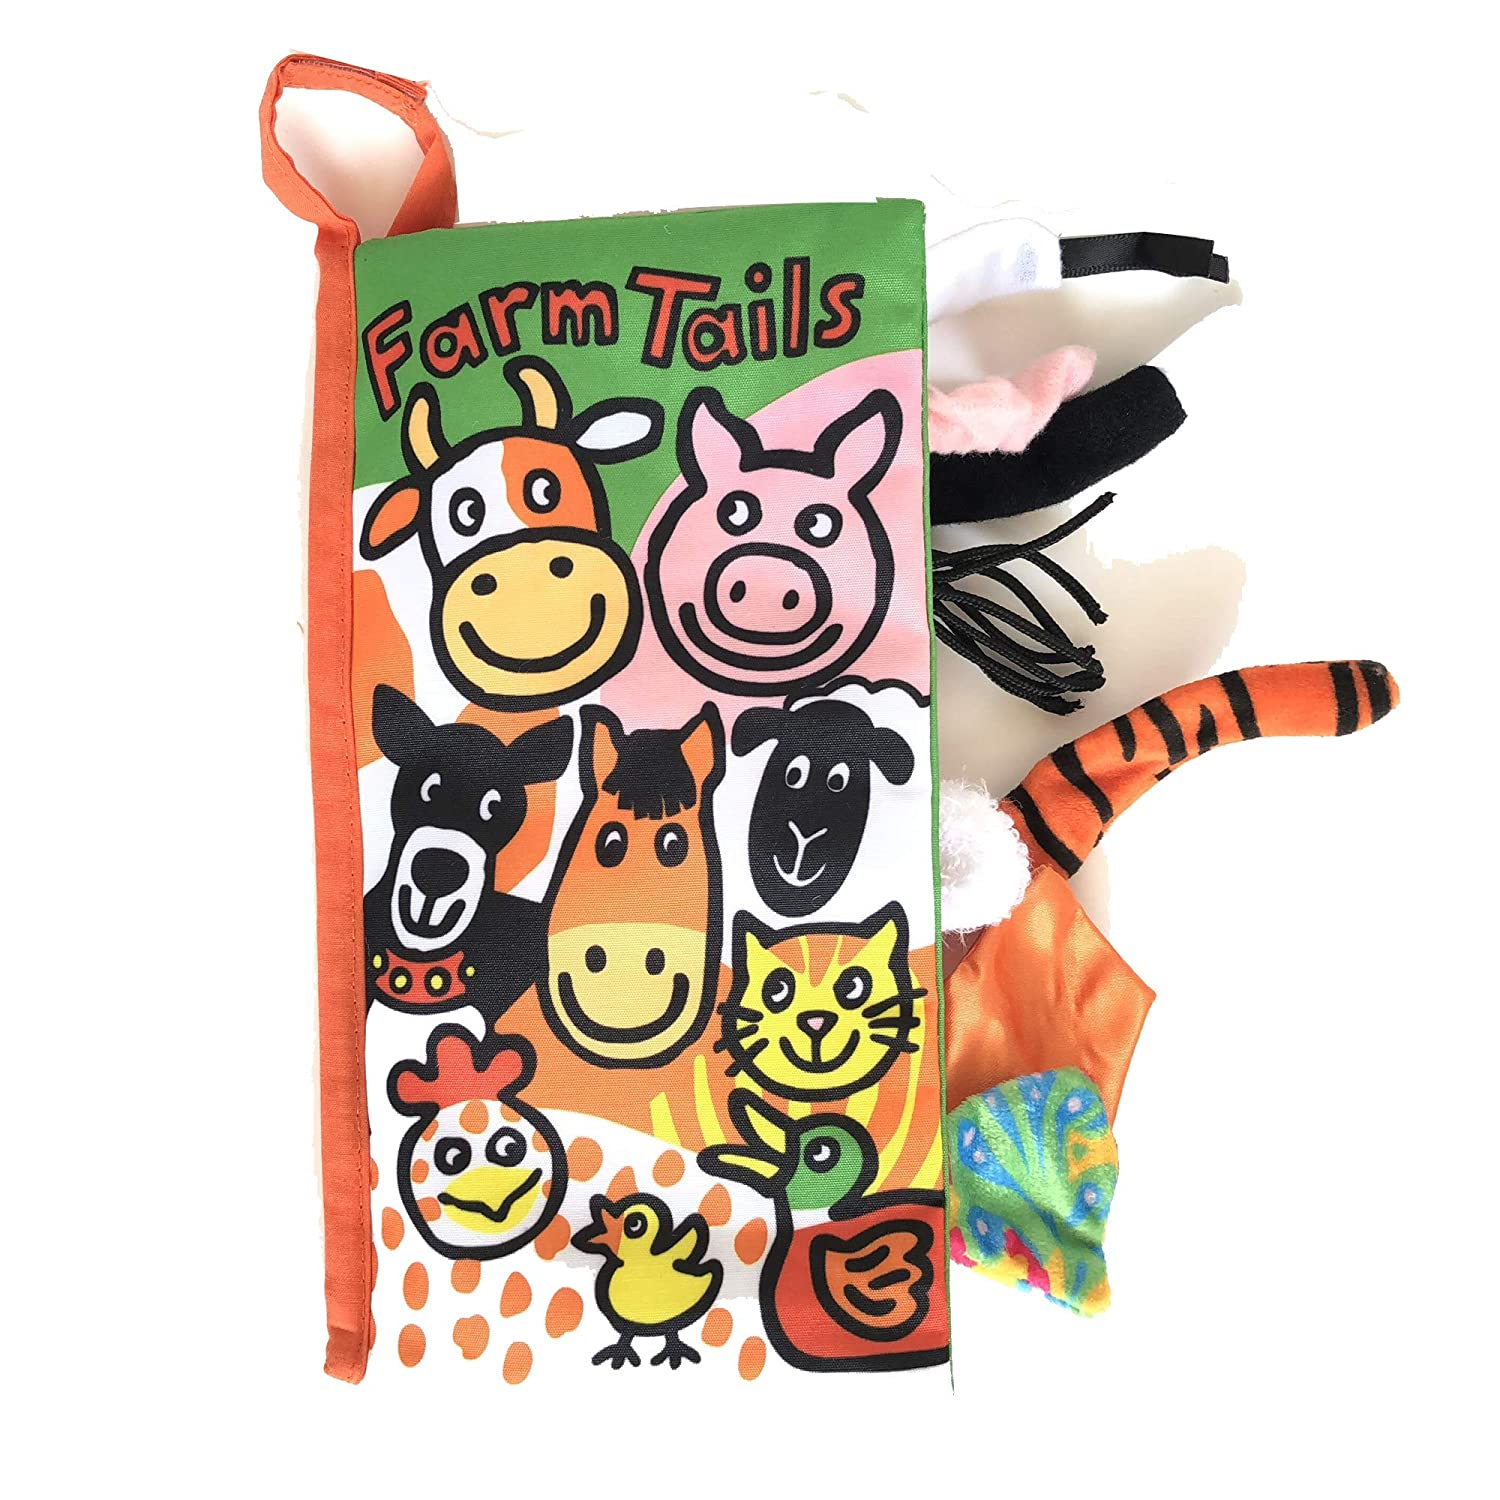 Soft Cloth Book Crinkle Animals Tails for Babies Infants Toddlers, Early Education Toys for Boy & Girl, Touch and Feel Activity (Snowy Tails) MY07106-TG